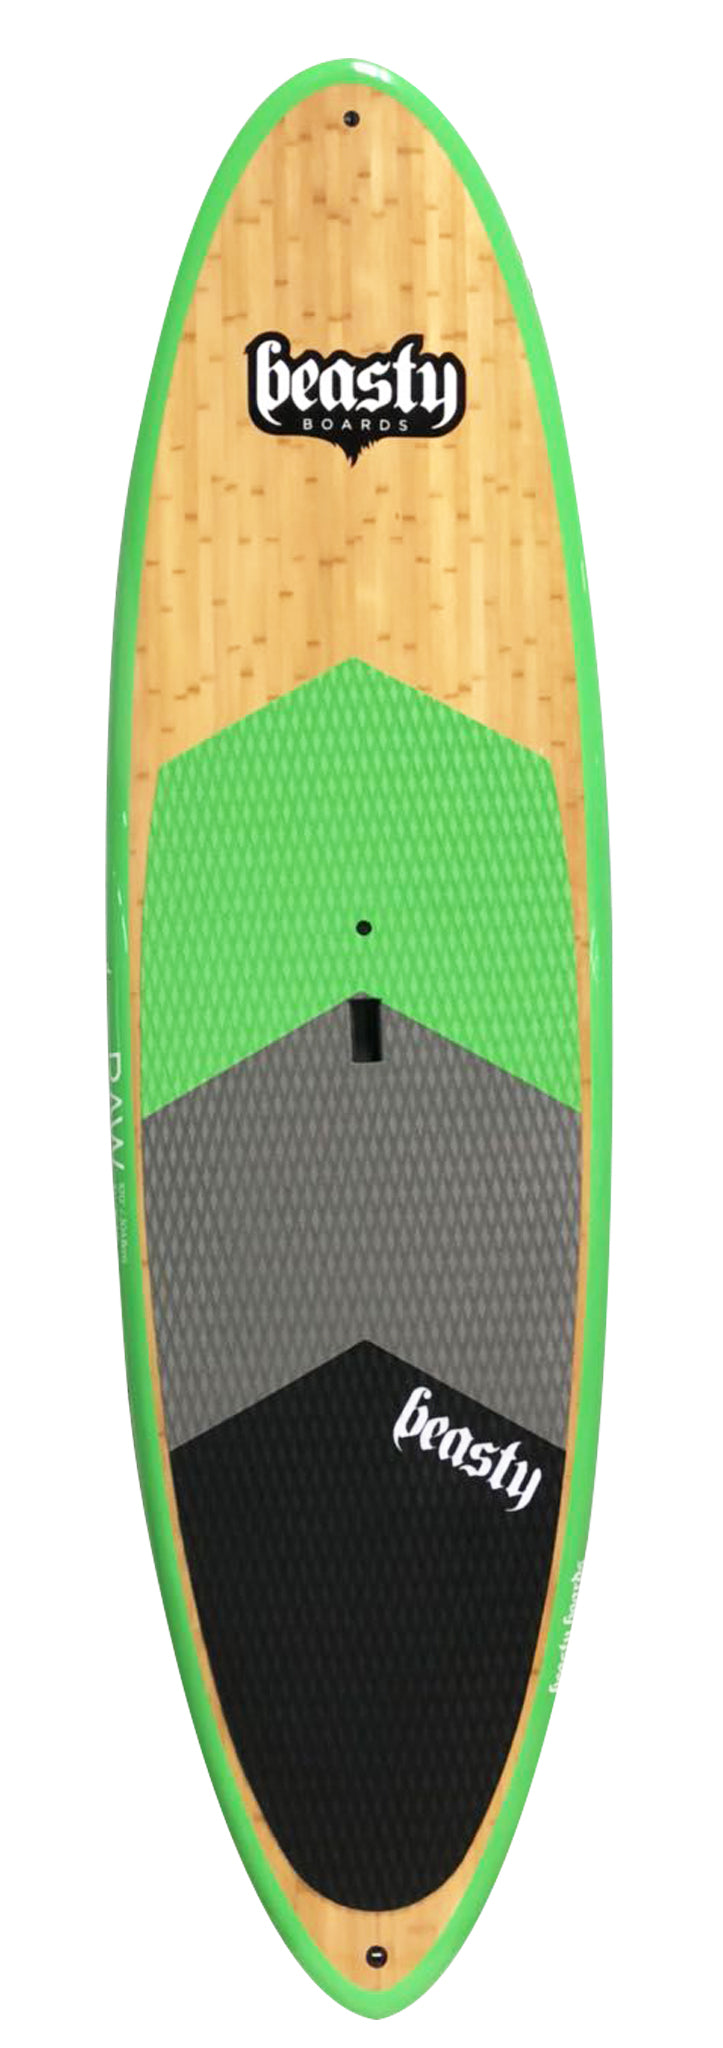 11'2 'Raw' Green Cruiser Double Bamboo SUP Package